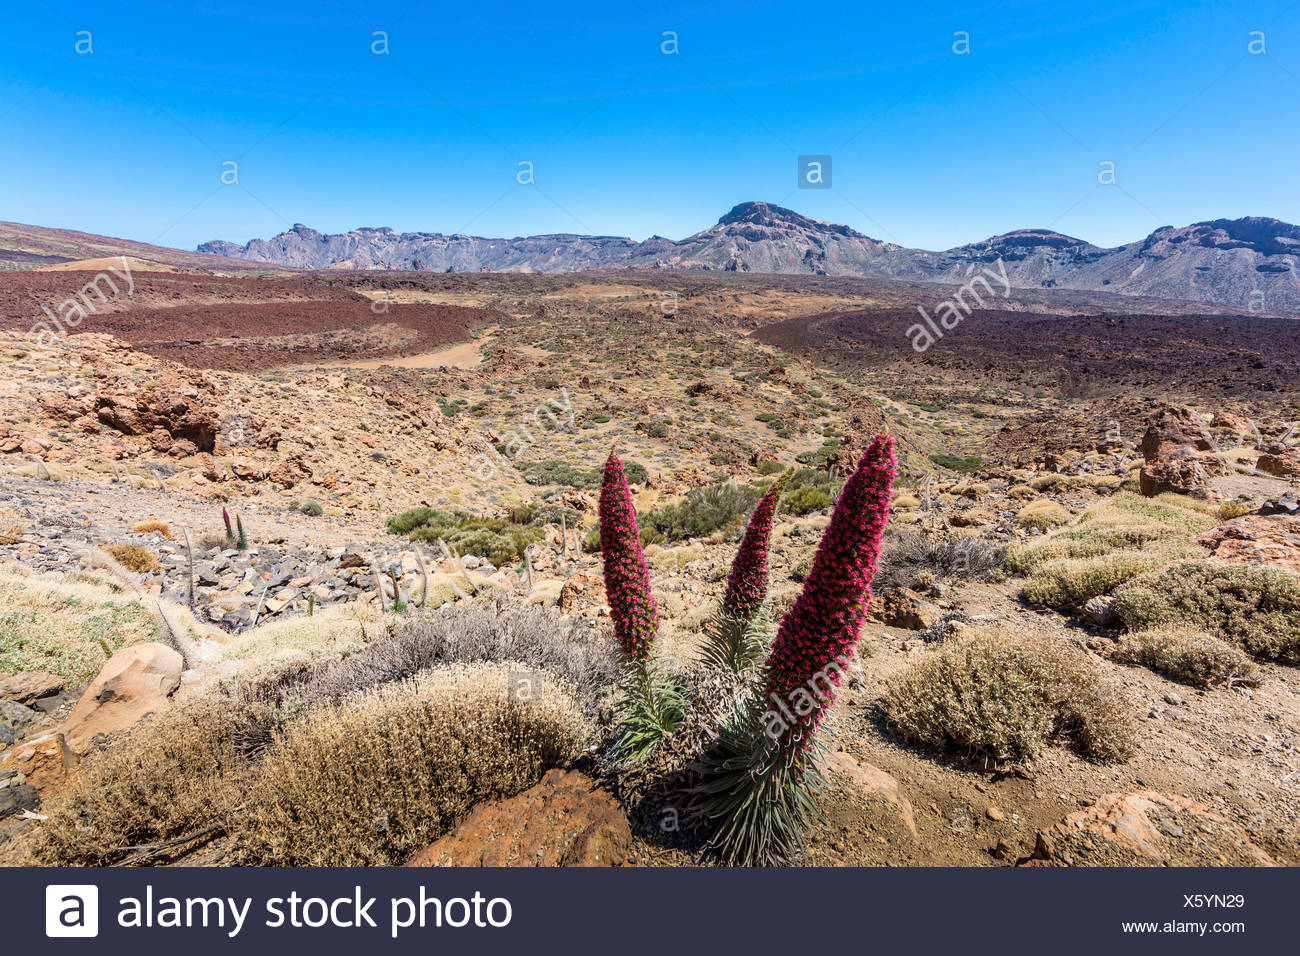 Red flowering Tower of Jewels or Tenerife Bugloss (Echium wildpretii) in the Parque Nacional de las Cañadas del Teide, Teide - Stock Image